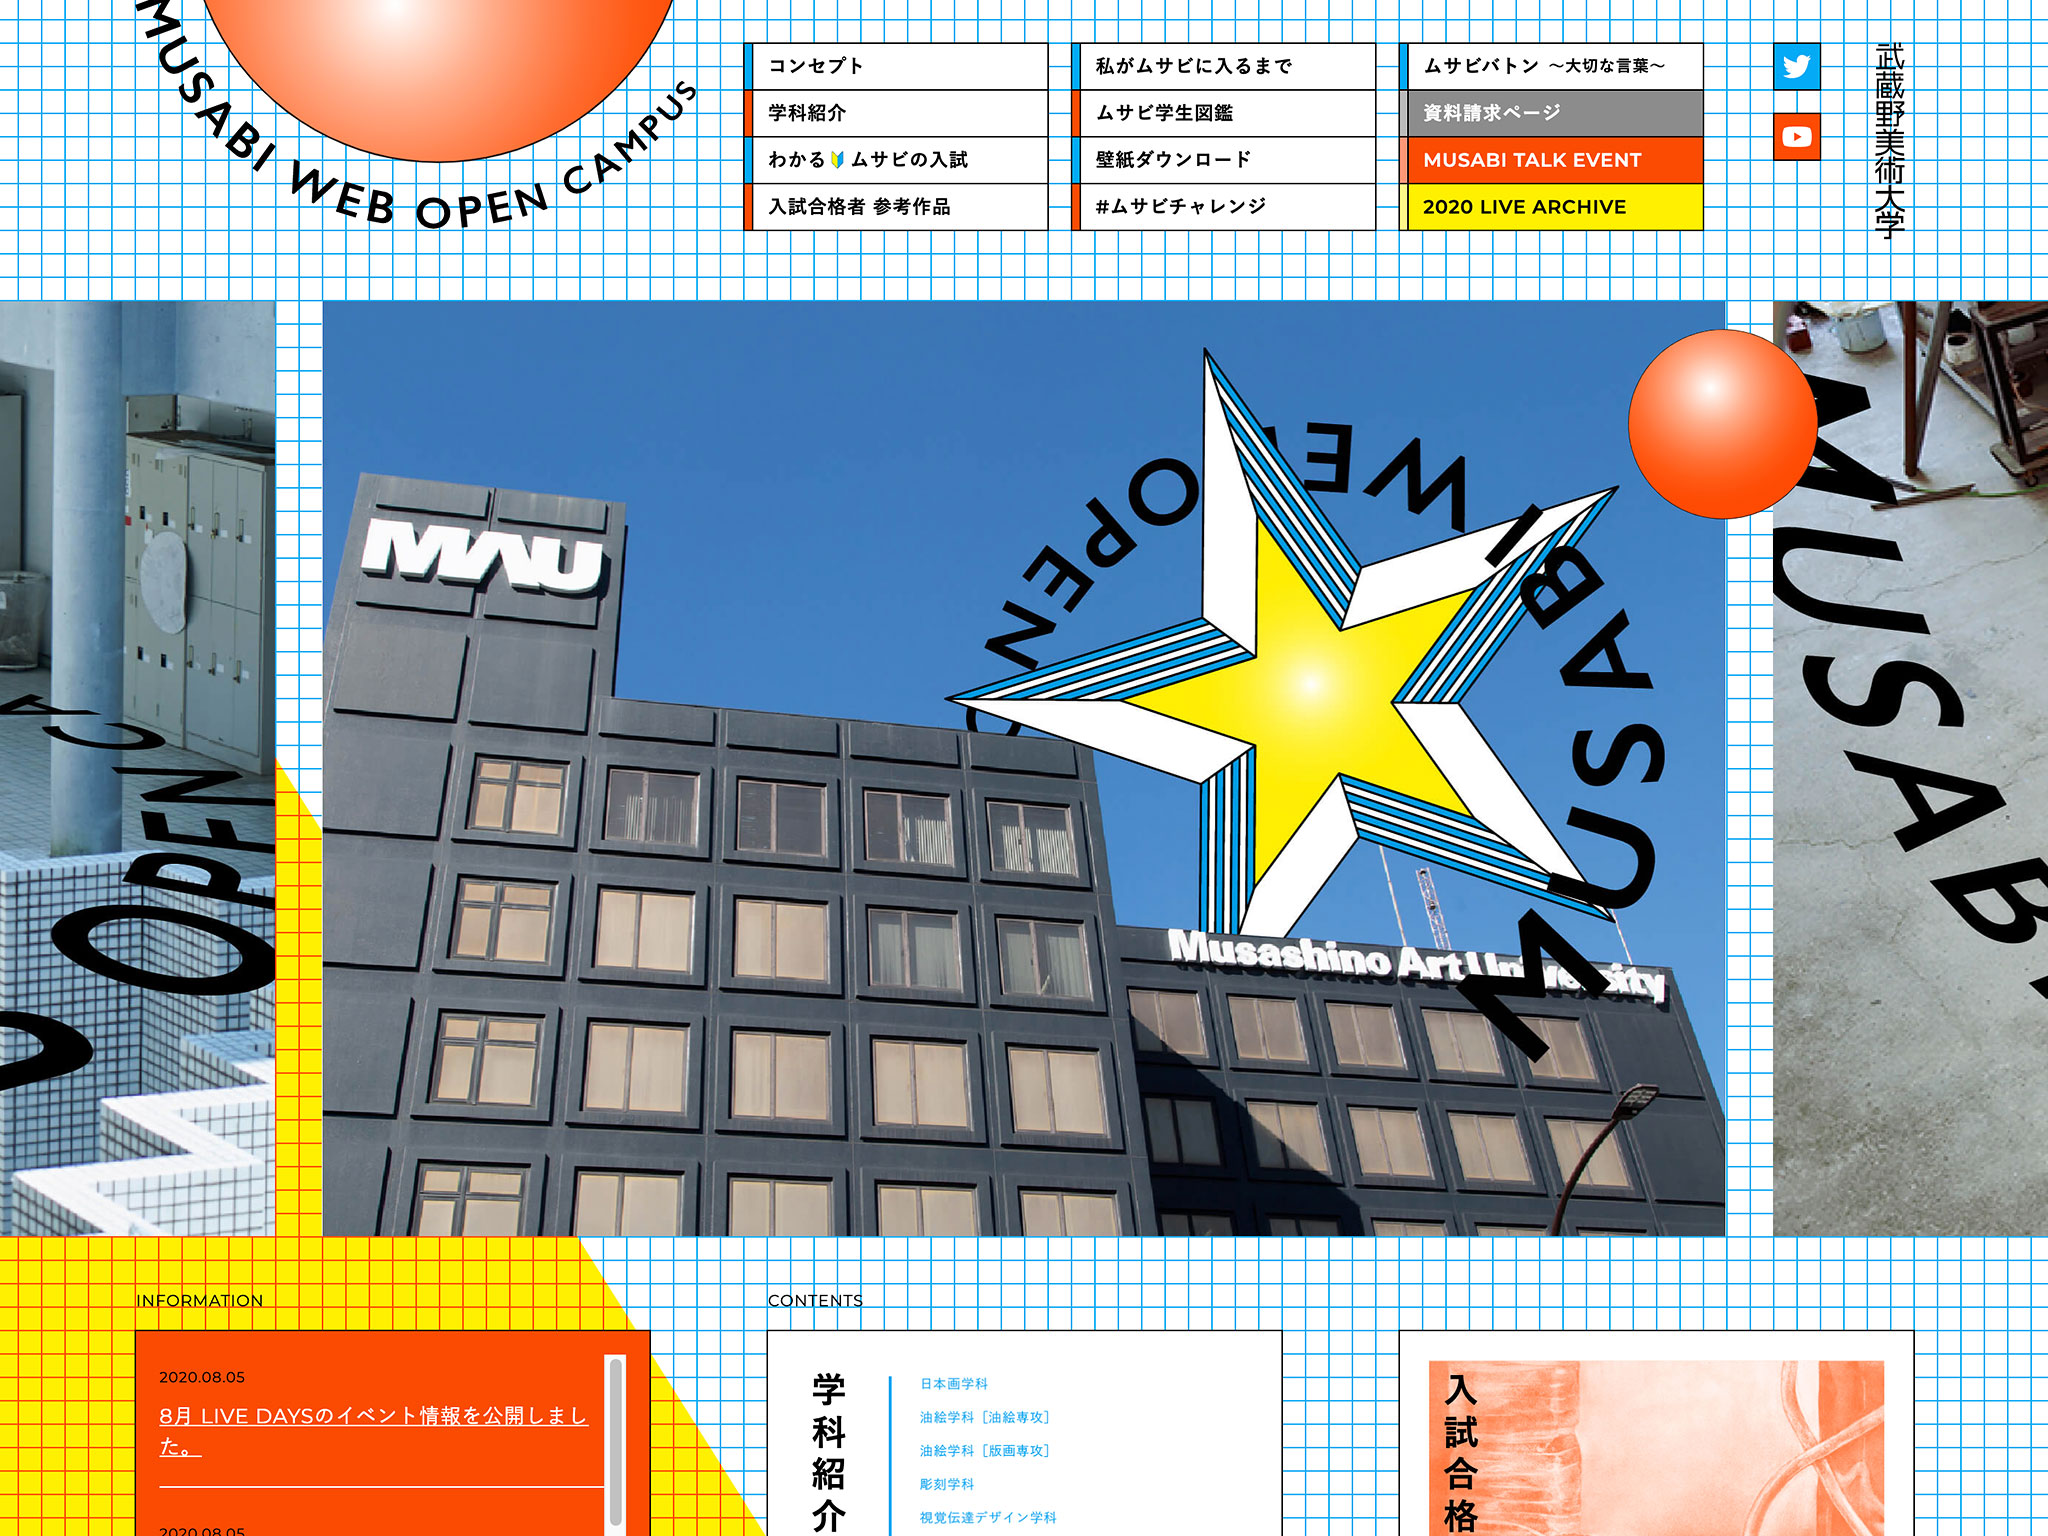 MUSABI WEB OPEN CAMPUS 2020【LIVE DAYS- 6.13 & 14 / 8.15 & 16】